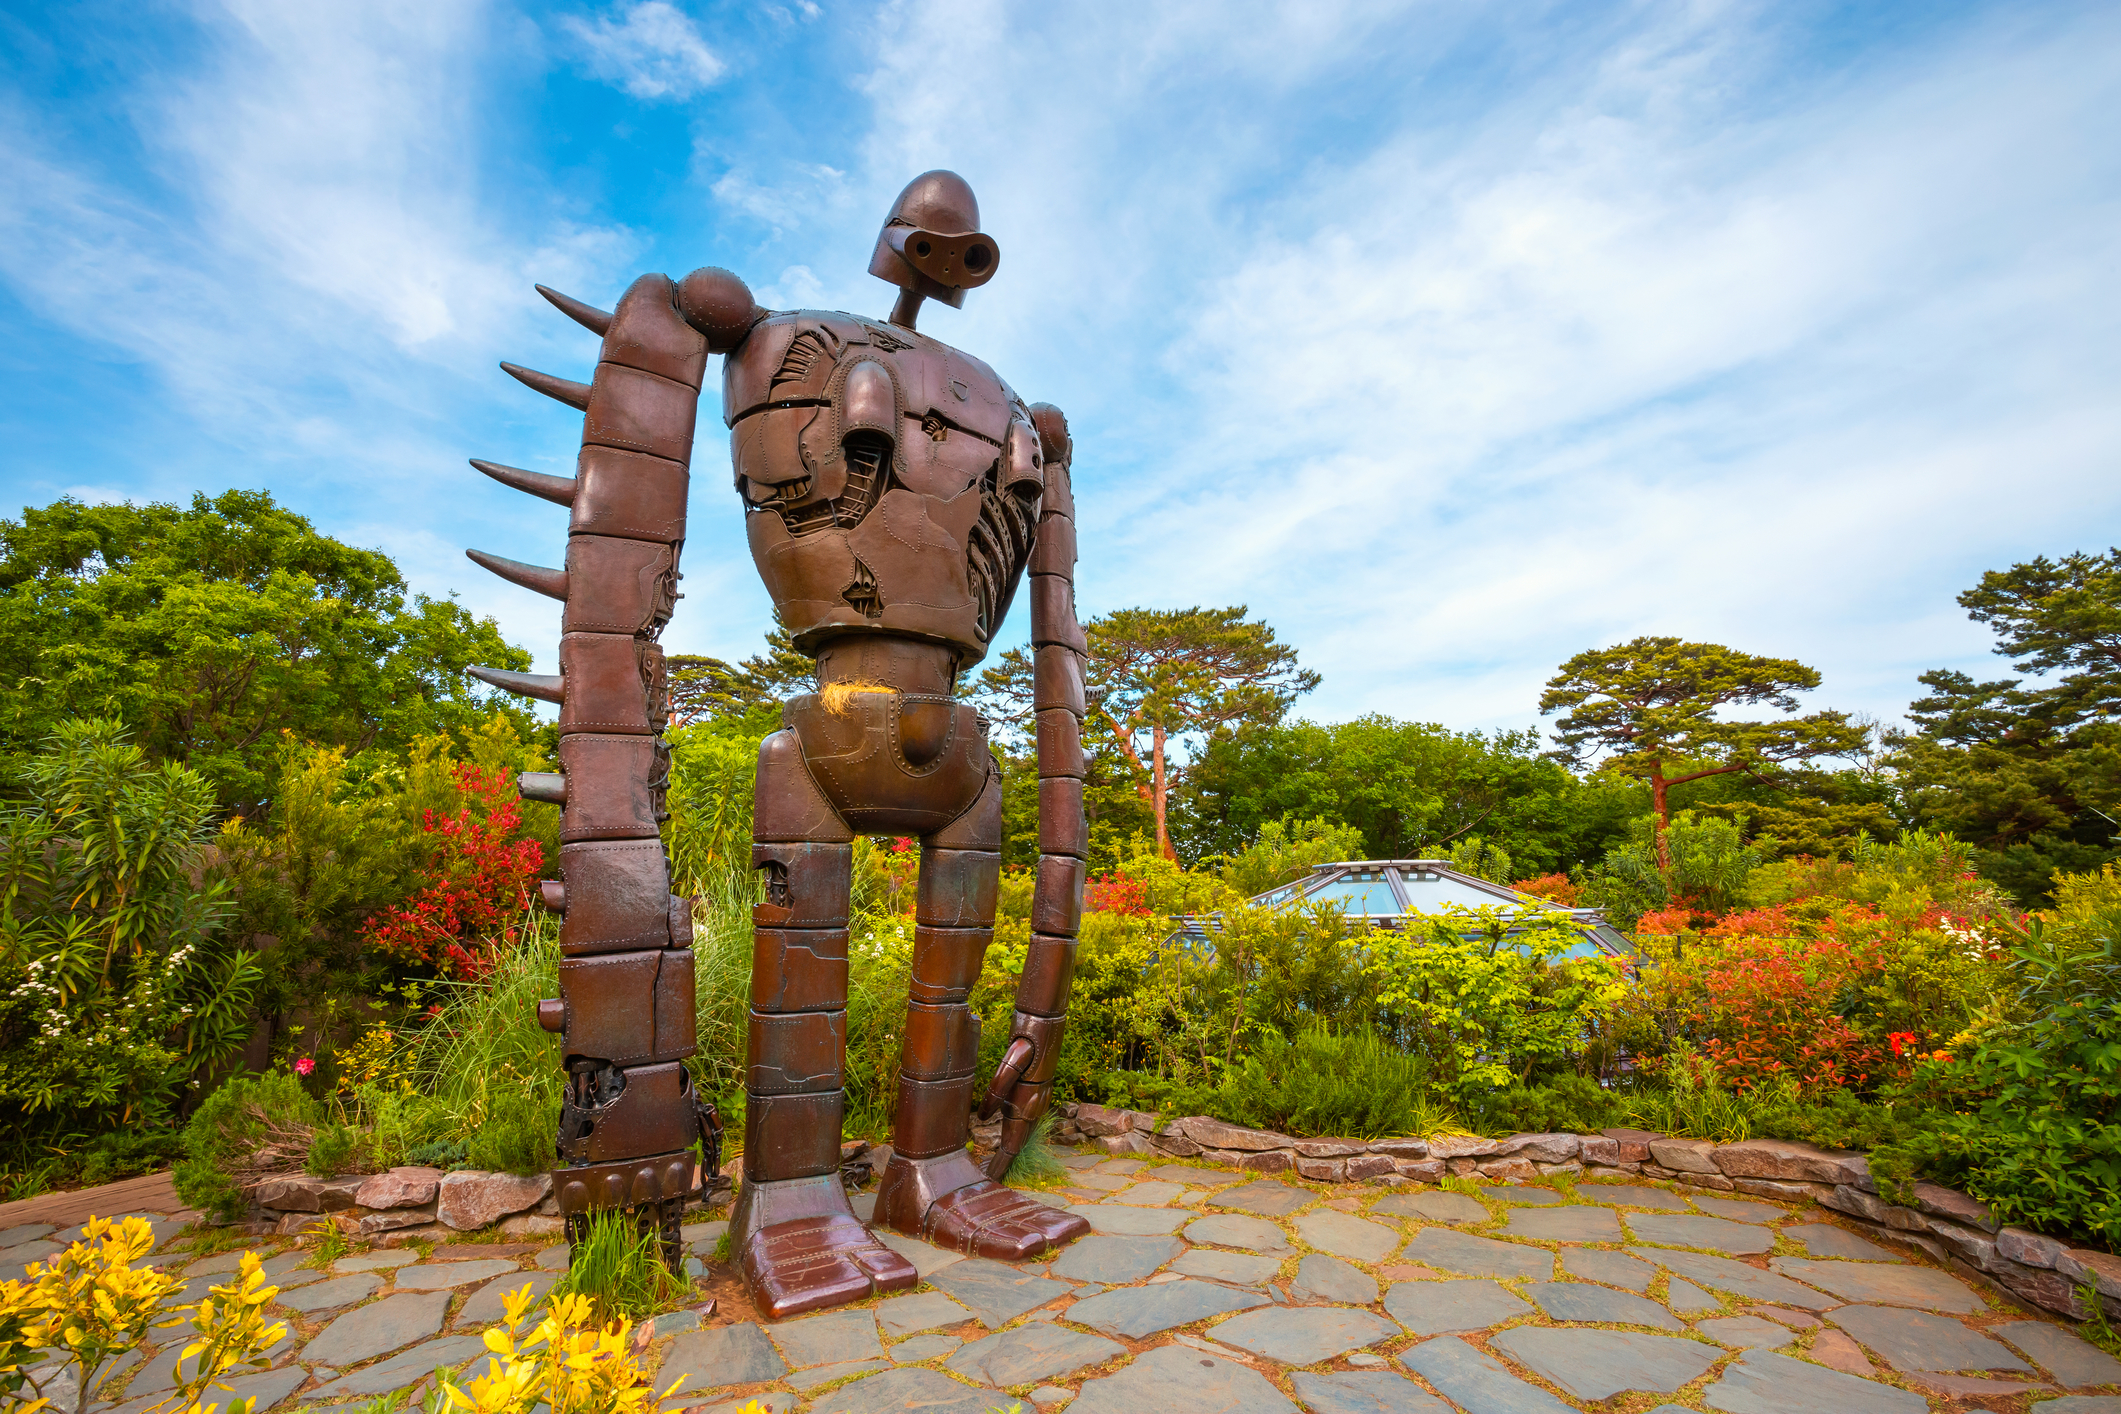 This Hayao Miyazaki exhibition explores how the Ghibli Museum was created